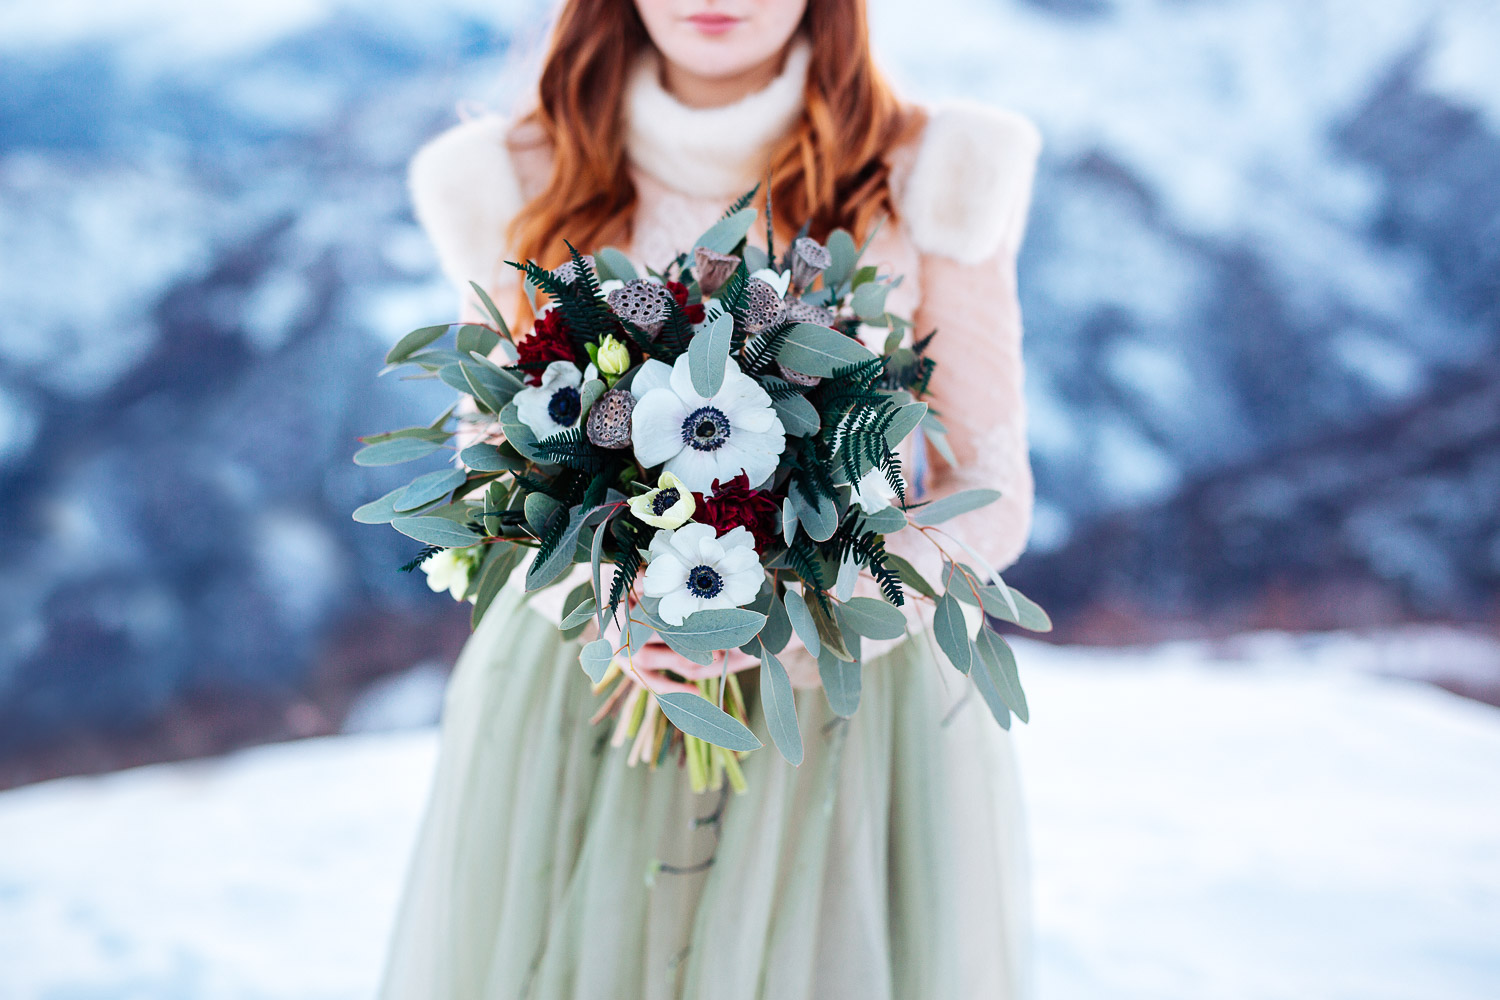 Winter wedding bouquet wih anemone and dark red flowers